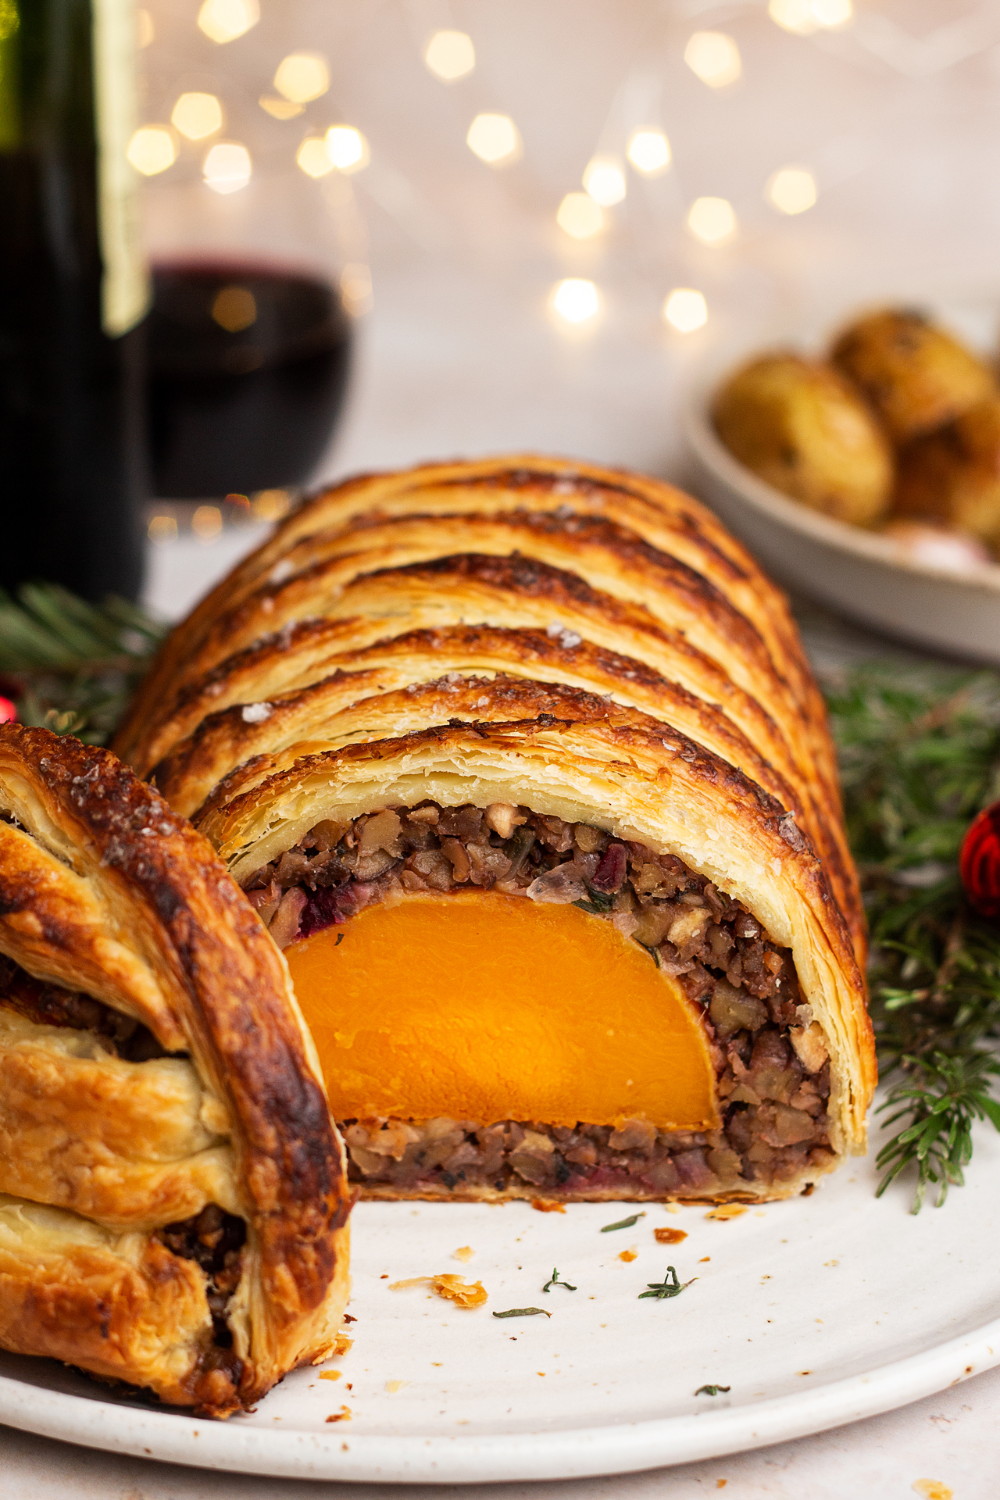 Vegetarian Wellington Recipe (With images) Vegetarian